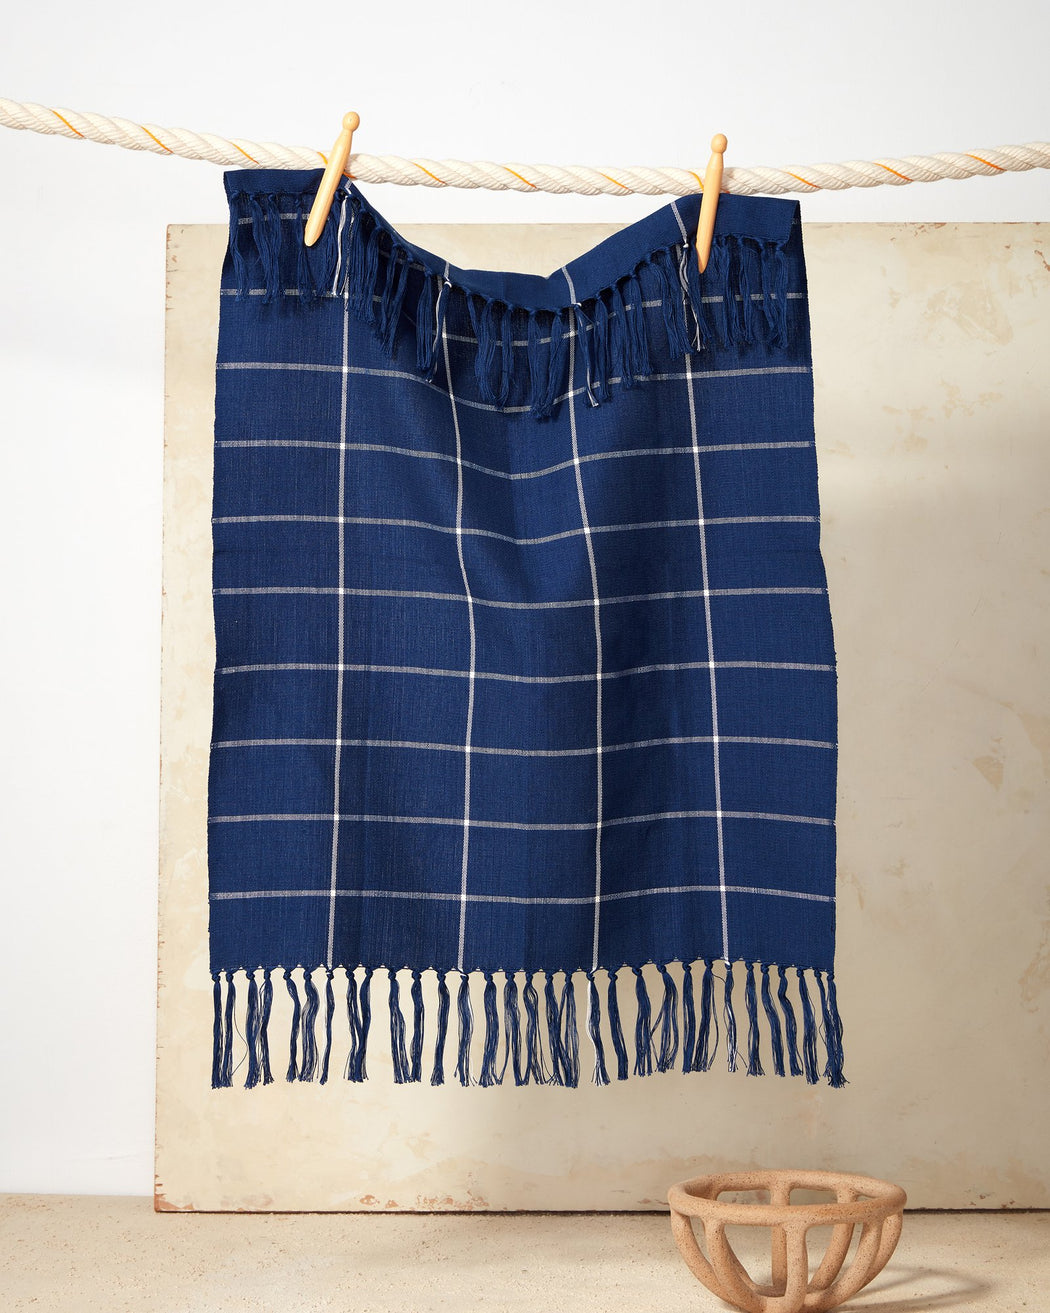 Grid Towel in Indigo